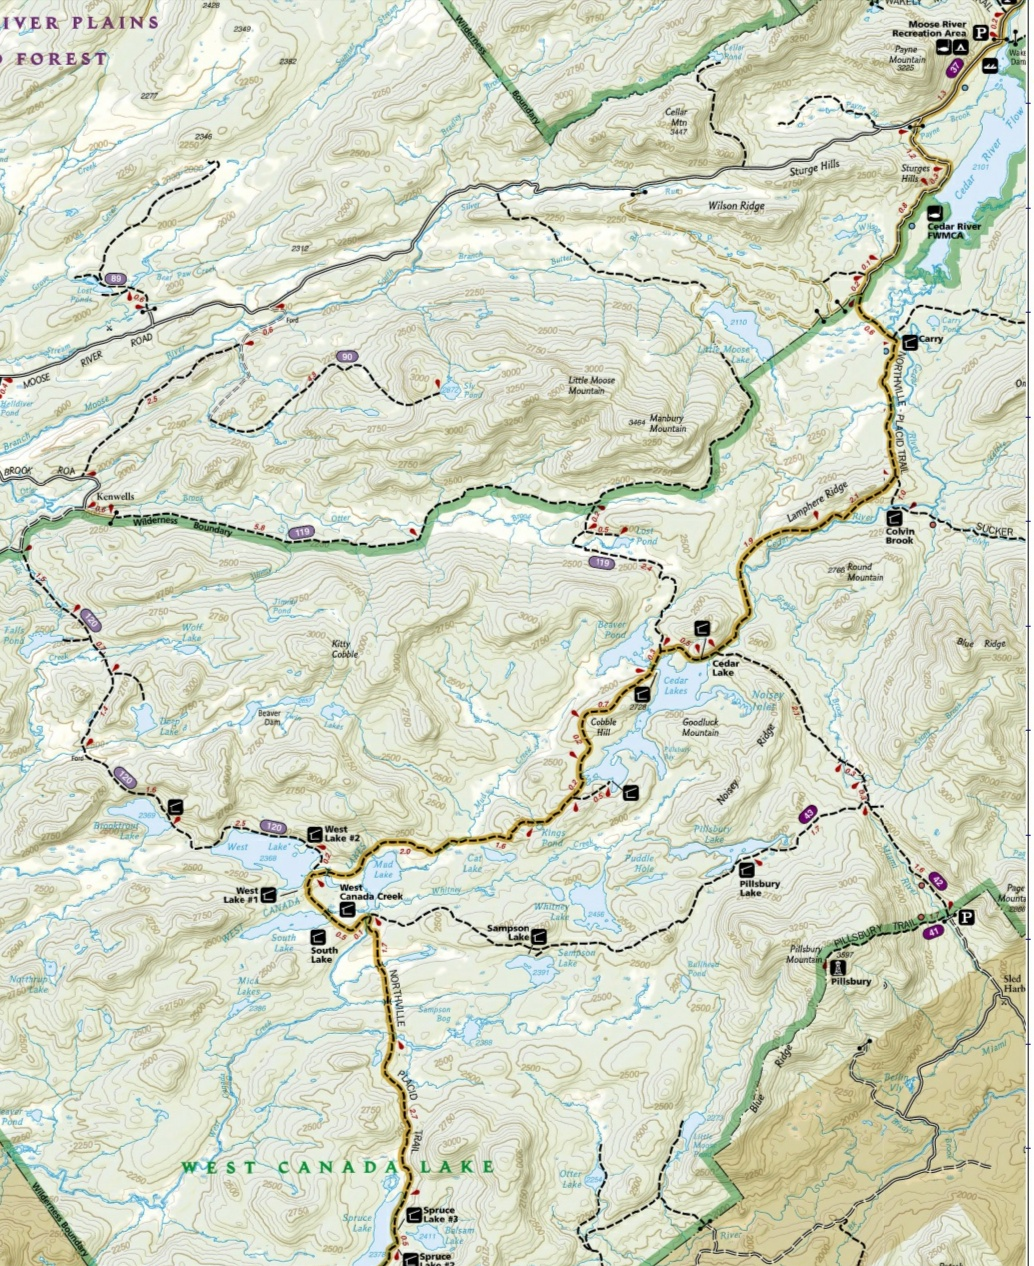 Map Of Canada With Lakes.West Canada Lakes Wilderness